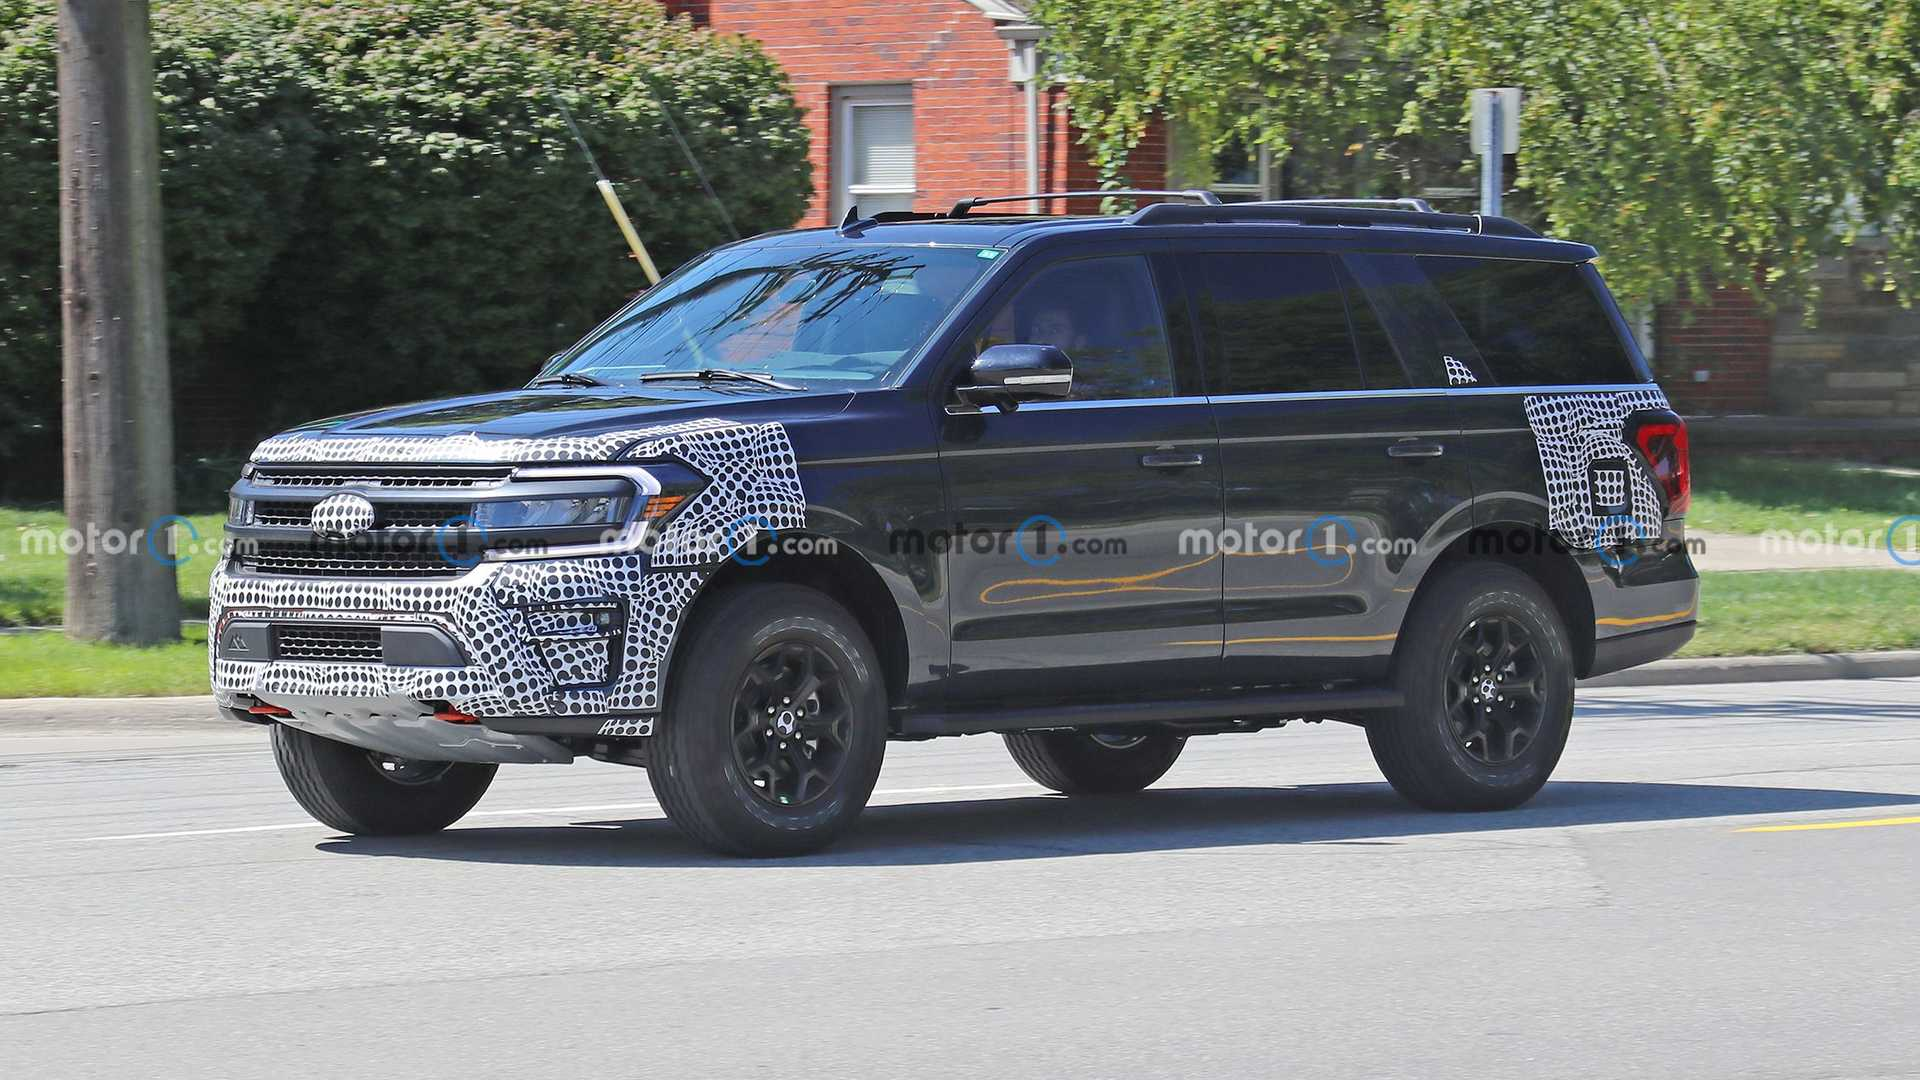 https://cdn.motor1.com/images/mgl/7q8OW/s6/2022-ford-expedition-timberline-new-spy-photo.jpg